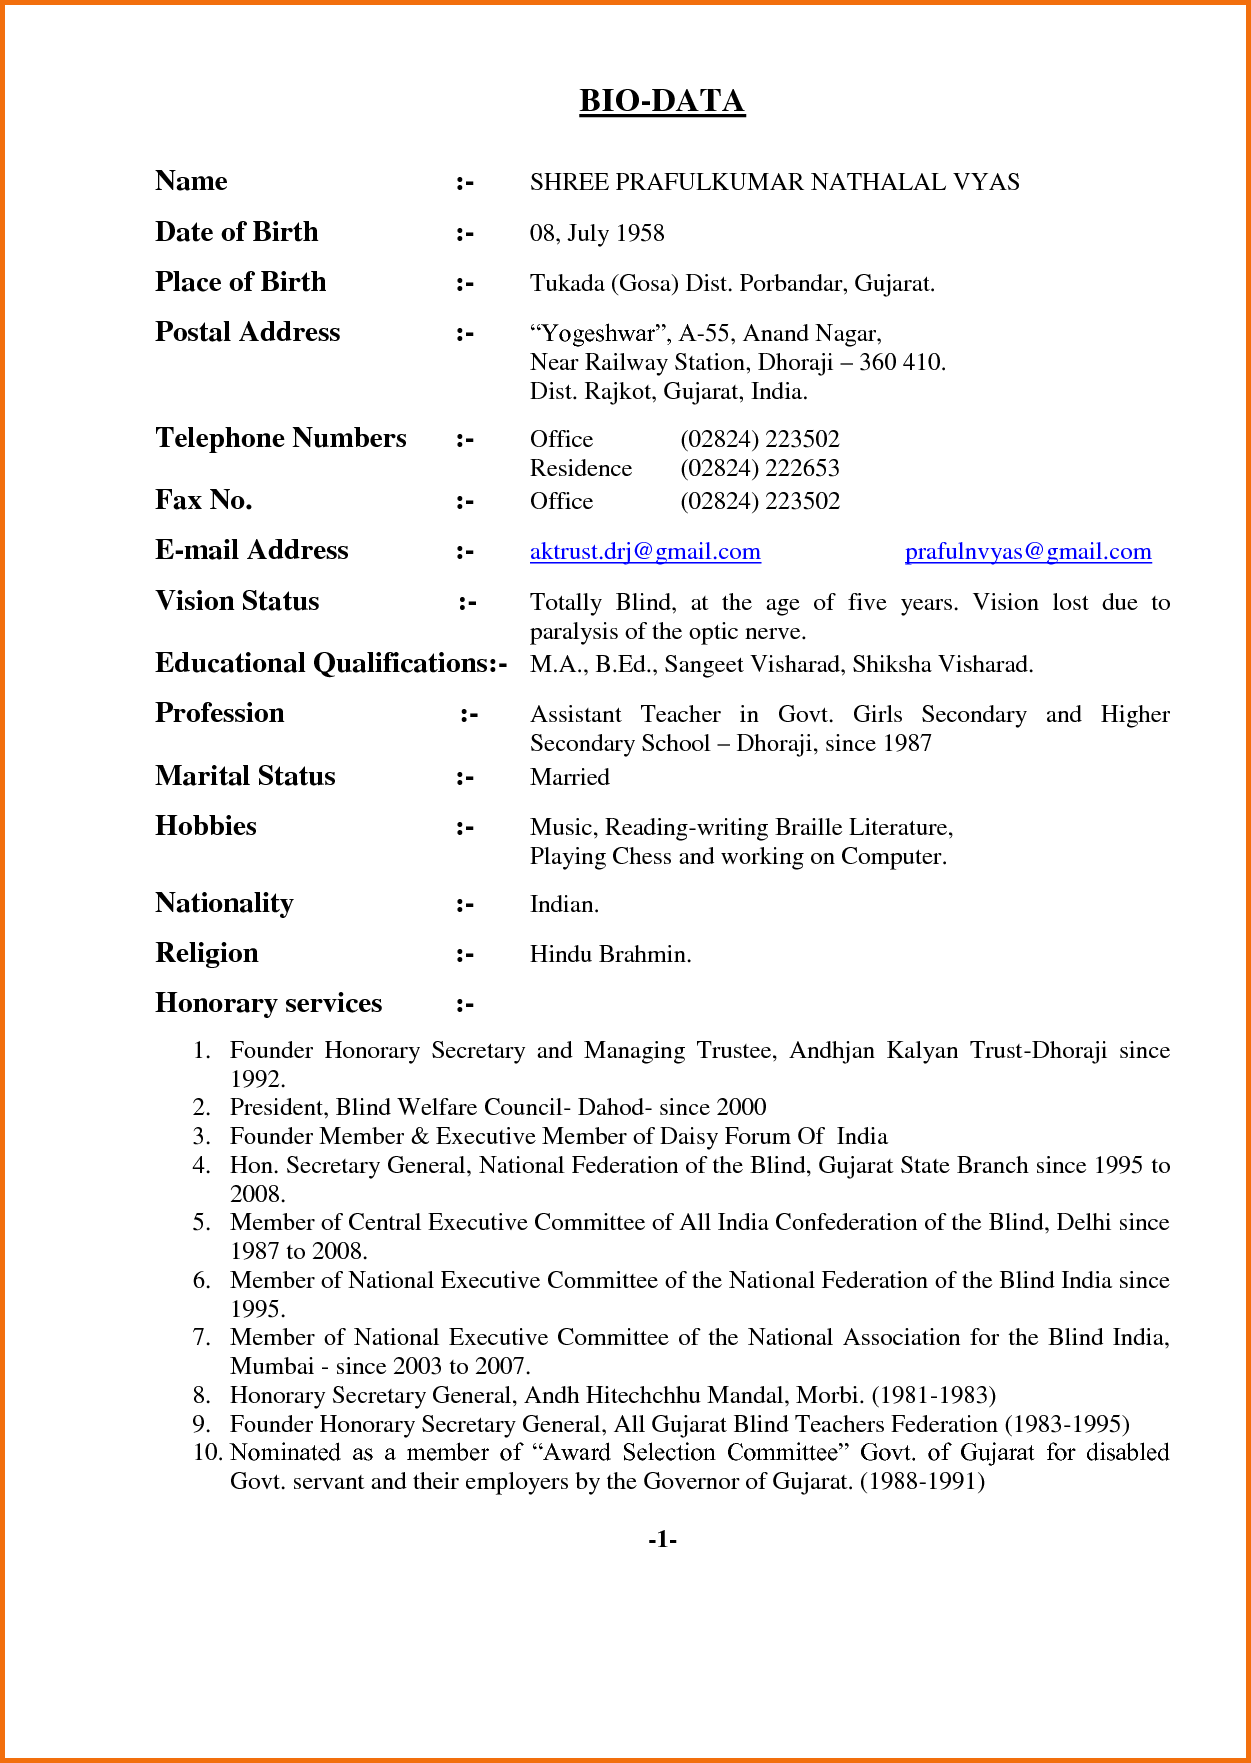 Marriage Biodata Format For Job Application Formatting Samples Teachers  Examples Resumes  Biodata Format For Teacher Job